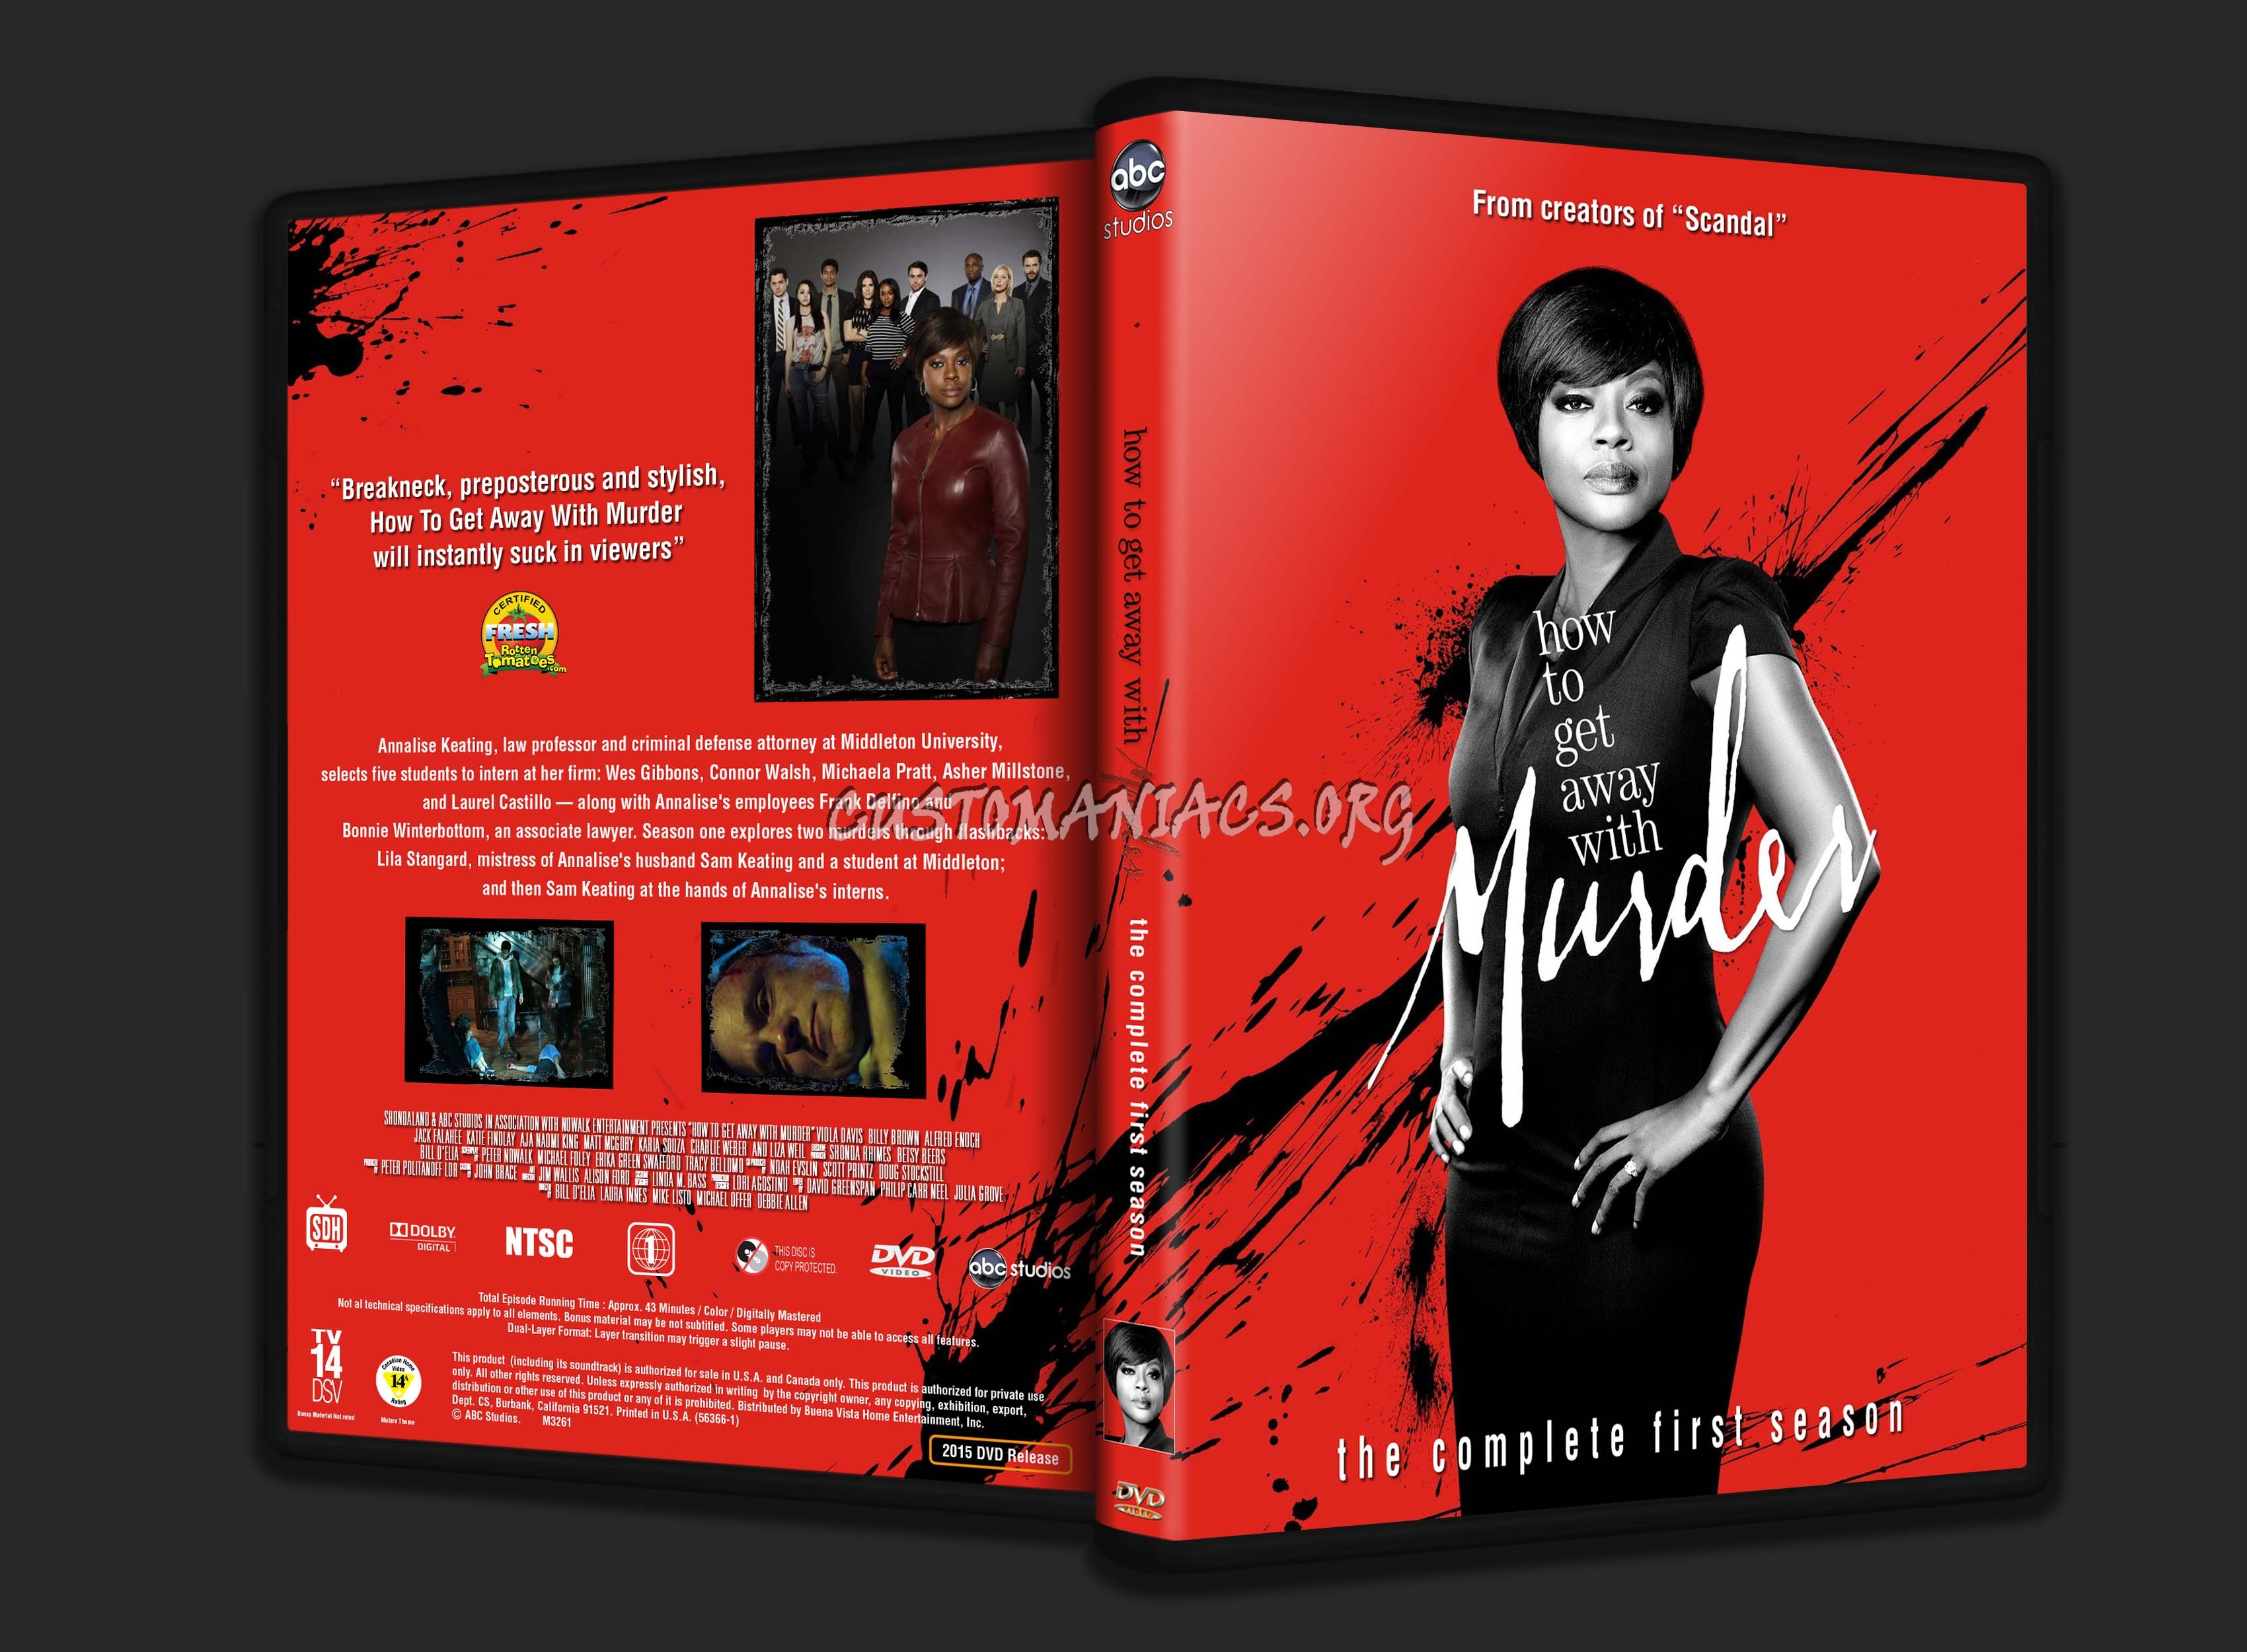 How To Get Away With Murder Season One Dvd Cover '